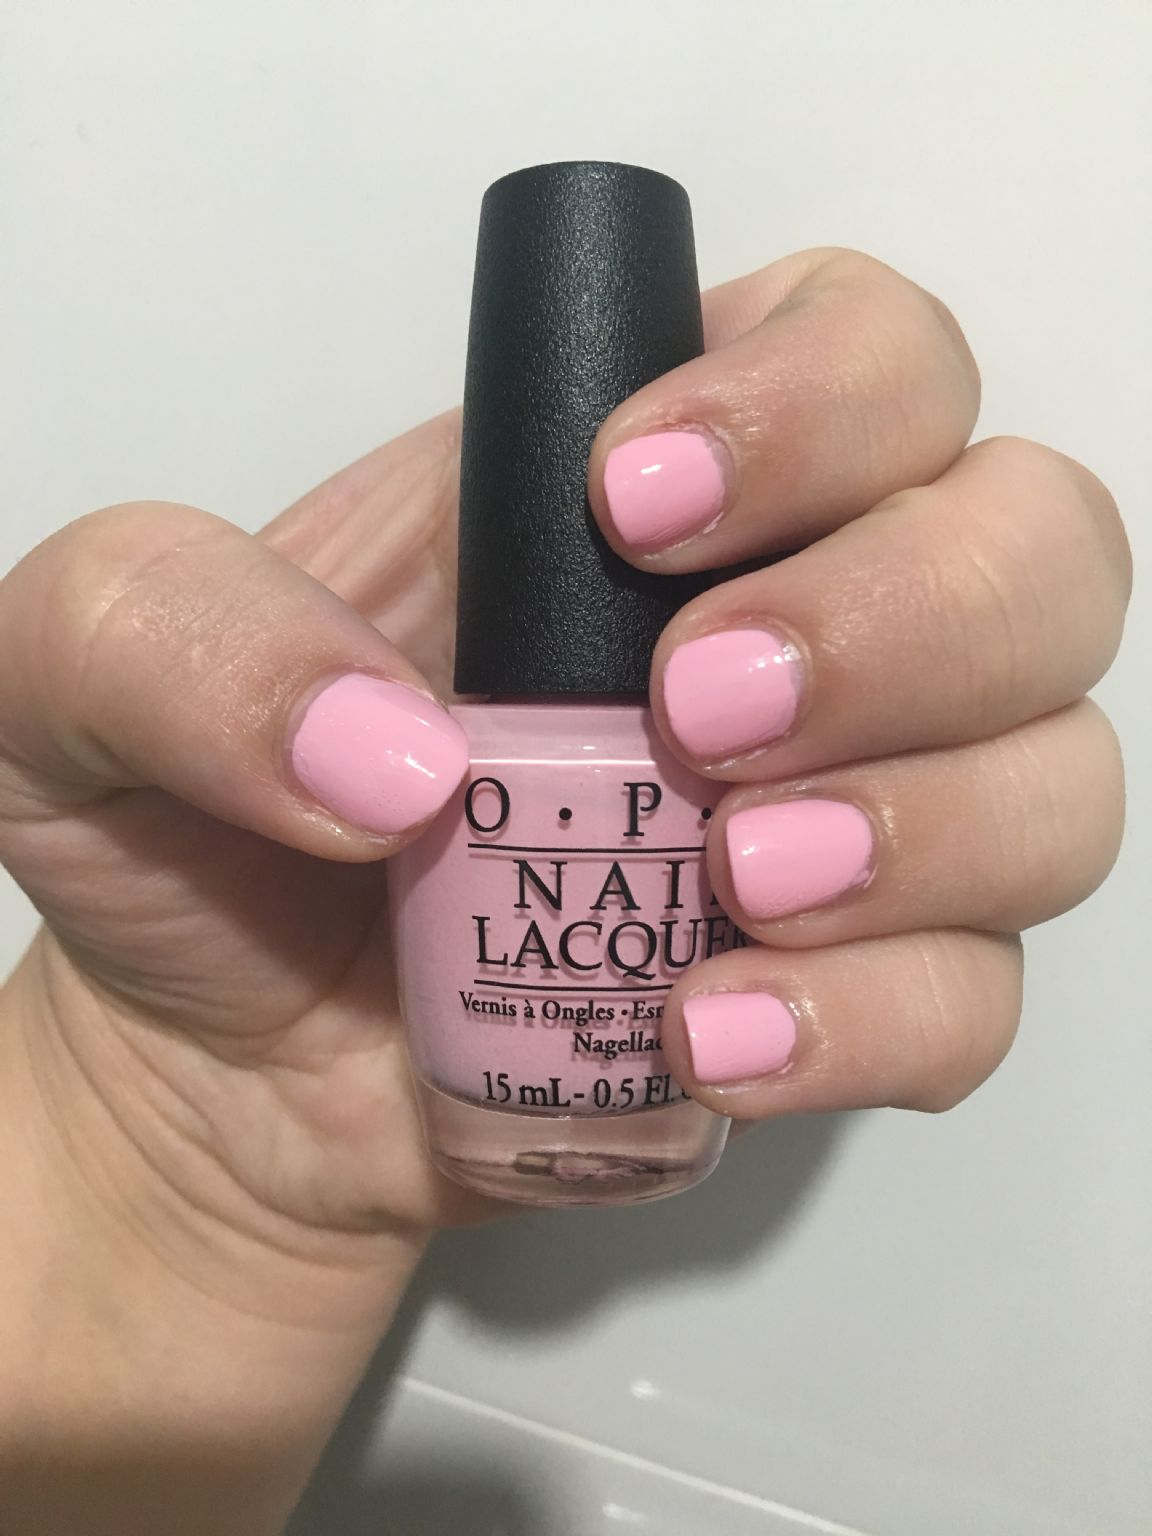 OPI - Suzi Shops & Island Hops (Uploaded by kittenmint)